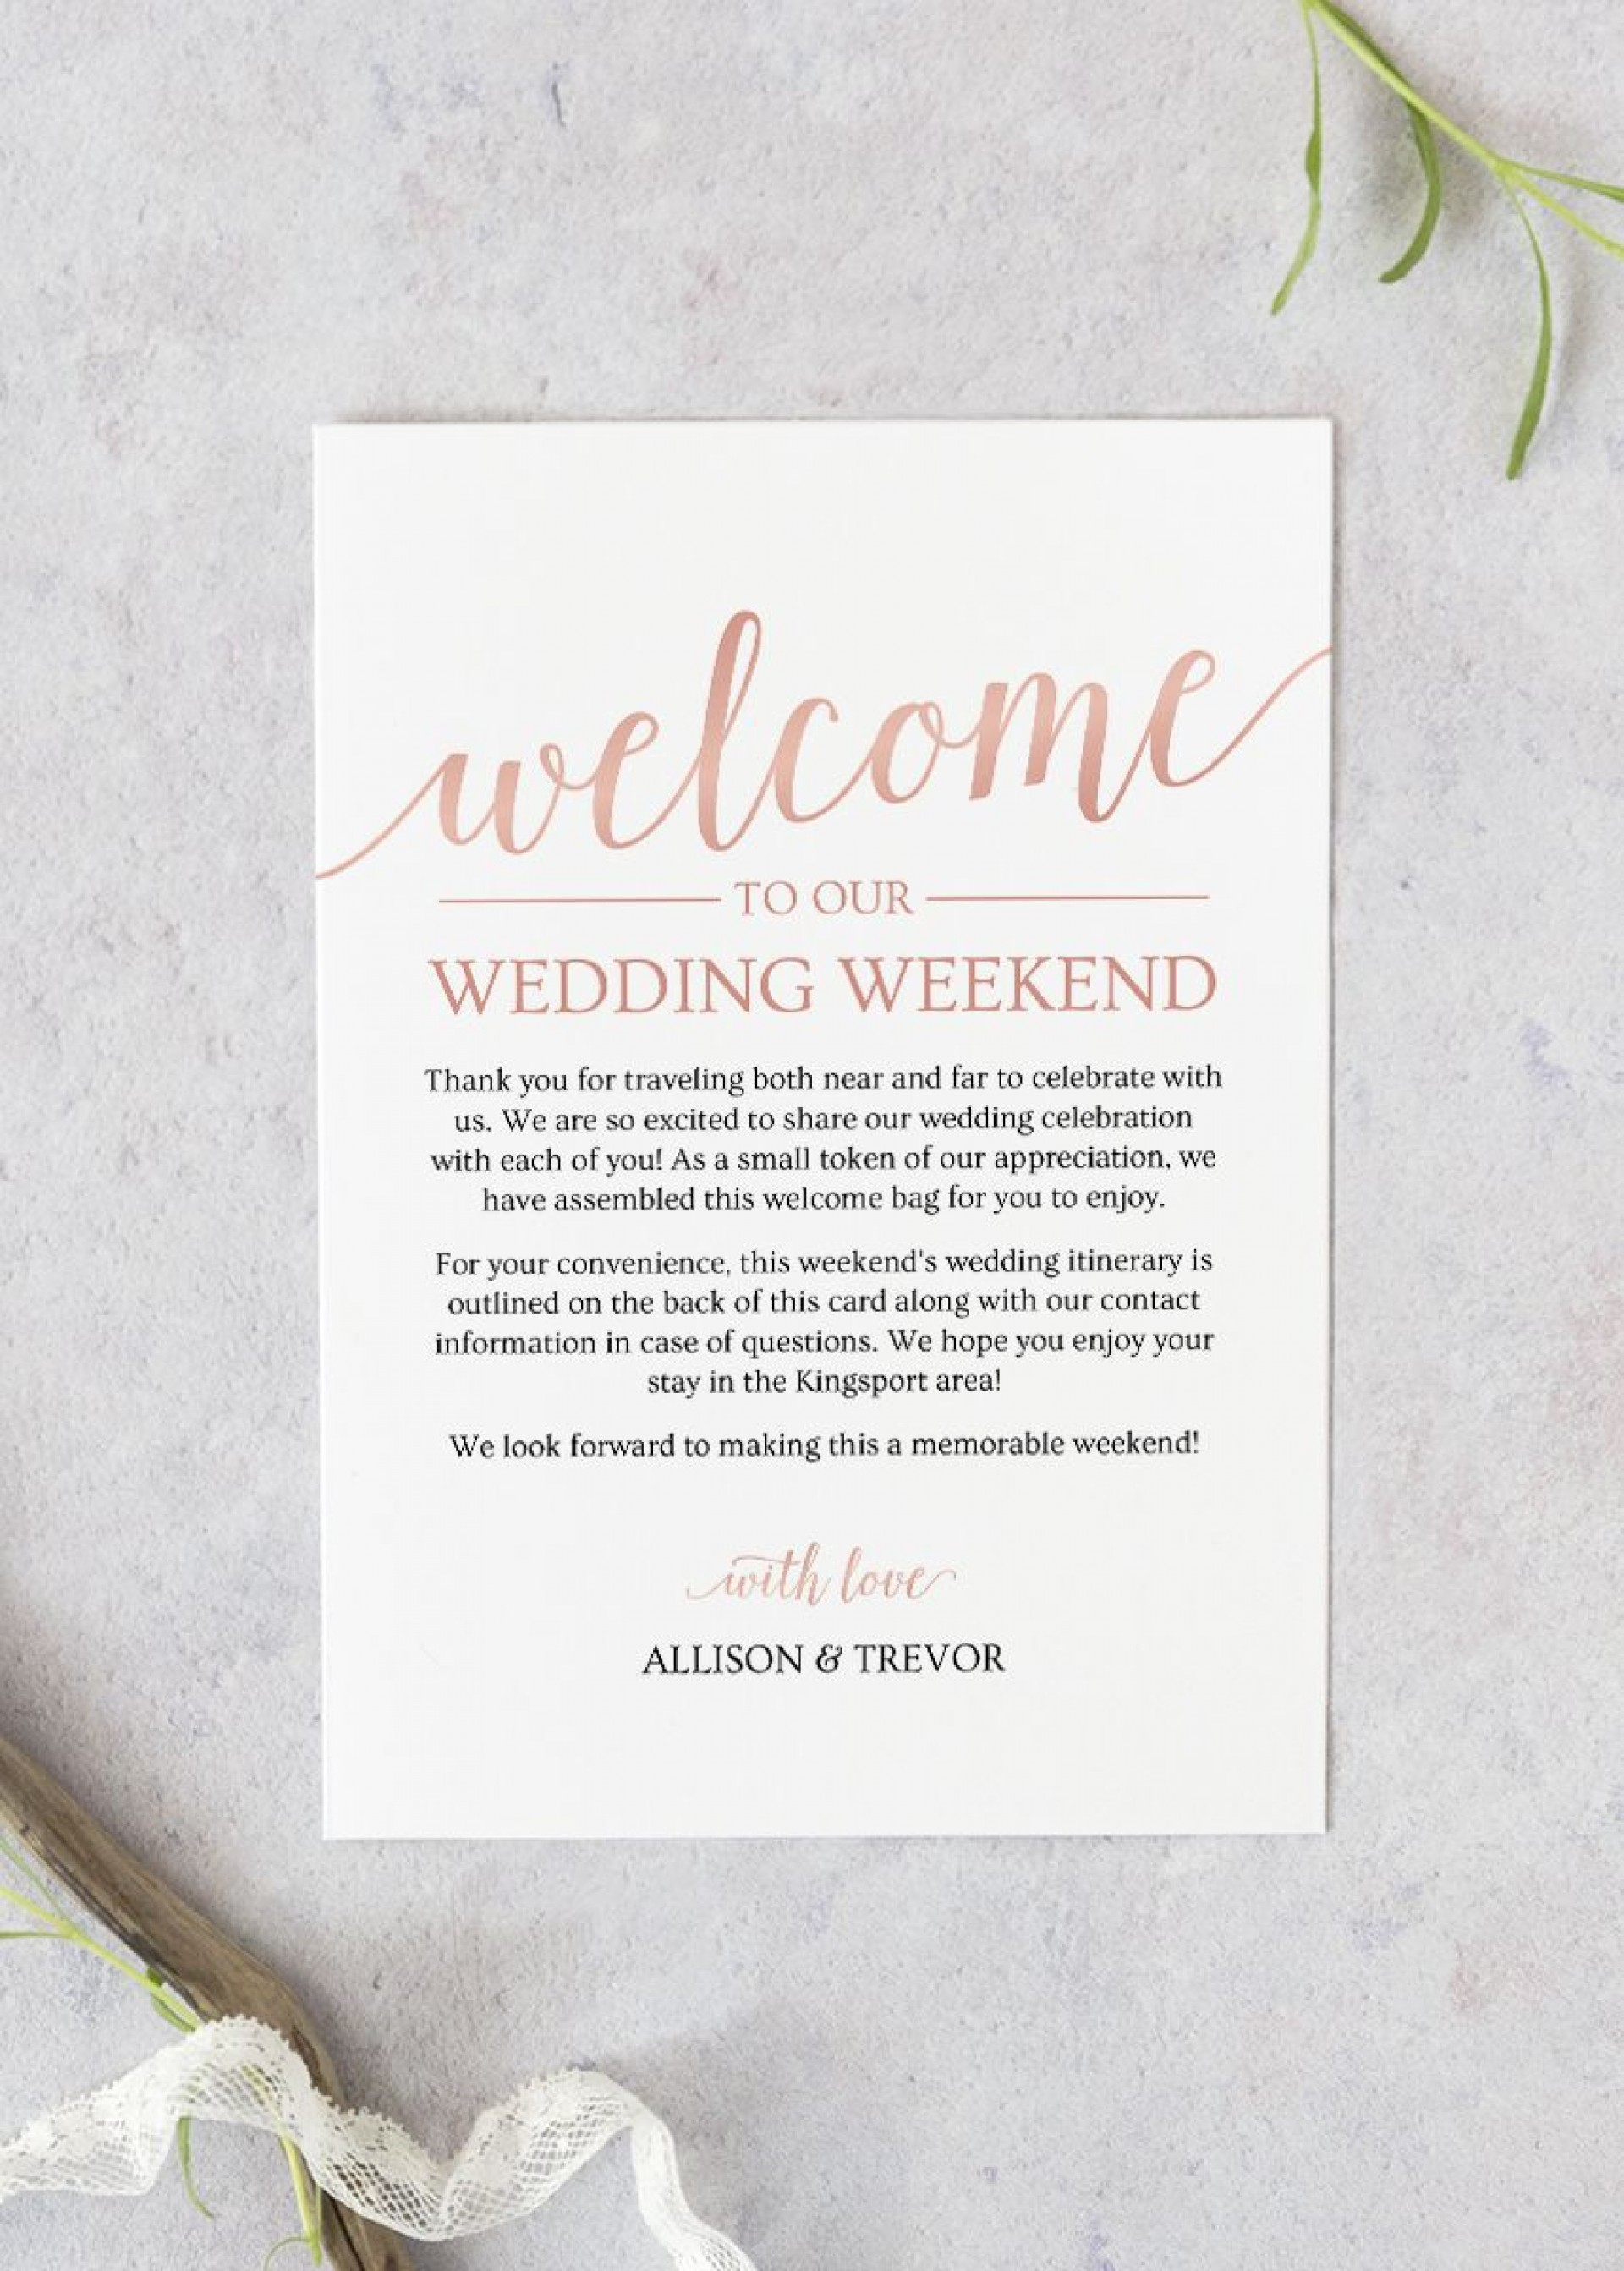 004 Wondrou Wedding Welcome Letter Template Download Concept 1920